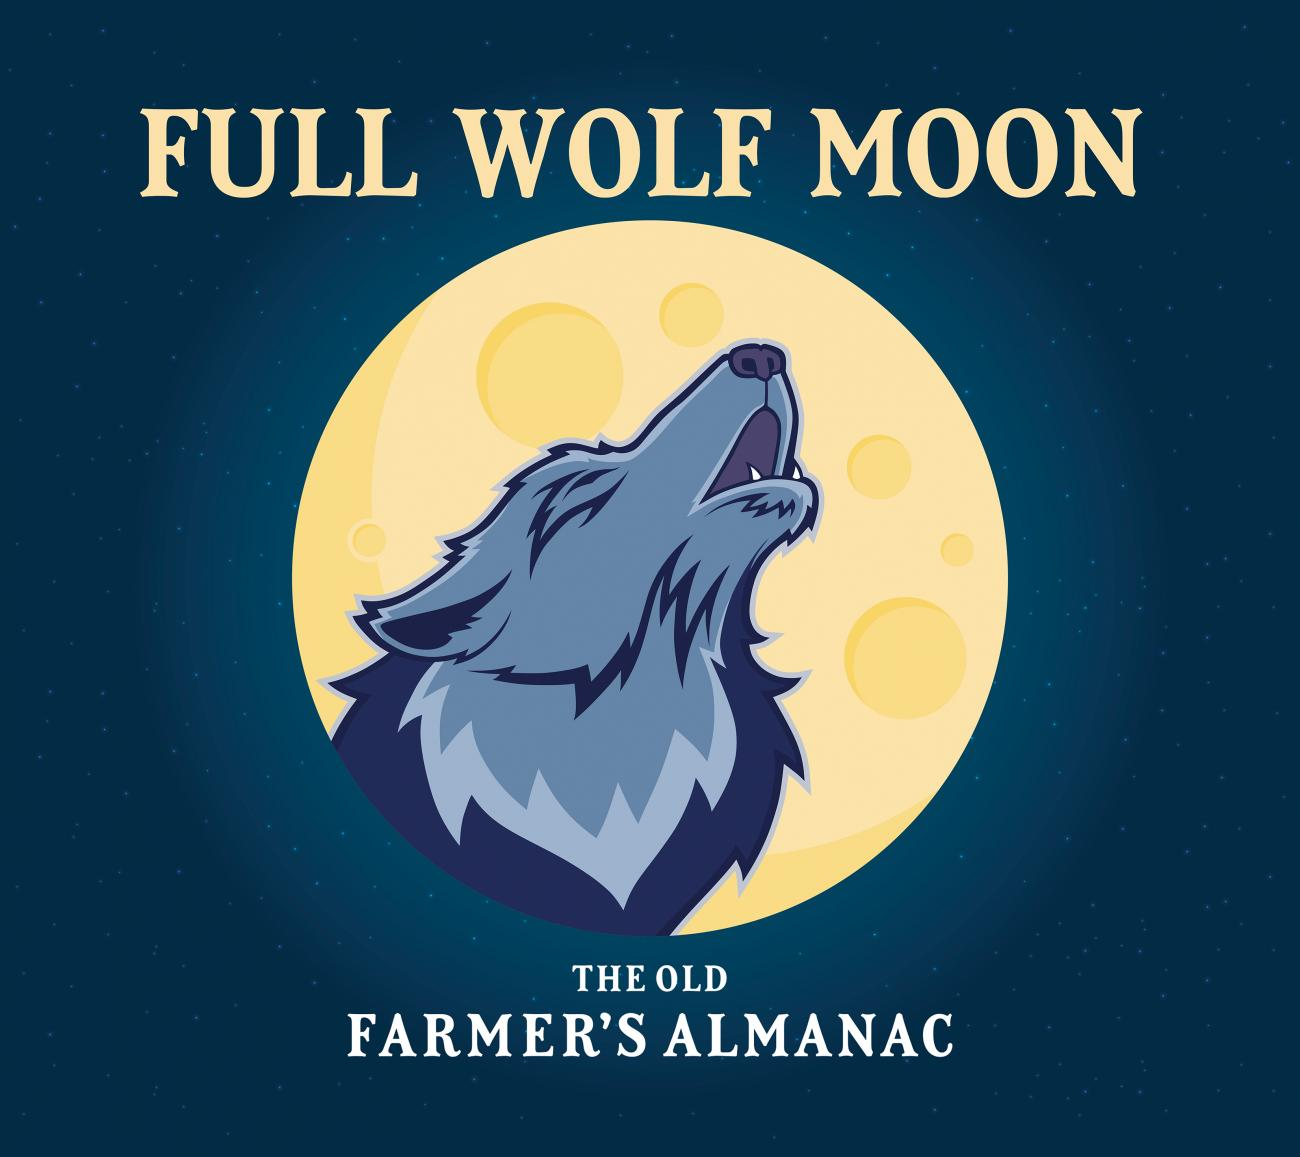 Lunar Days Calendar December 2020 Chicago Full Moon for January 2019: The Super Blood Wolf Moon | The Old